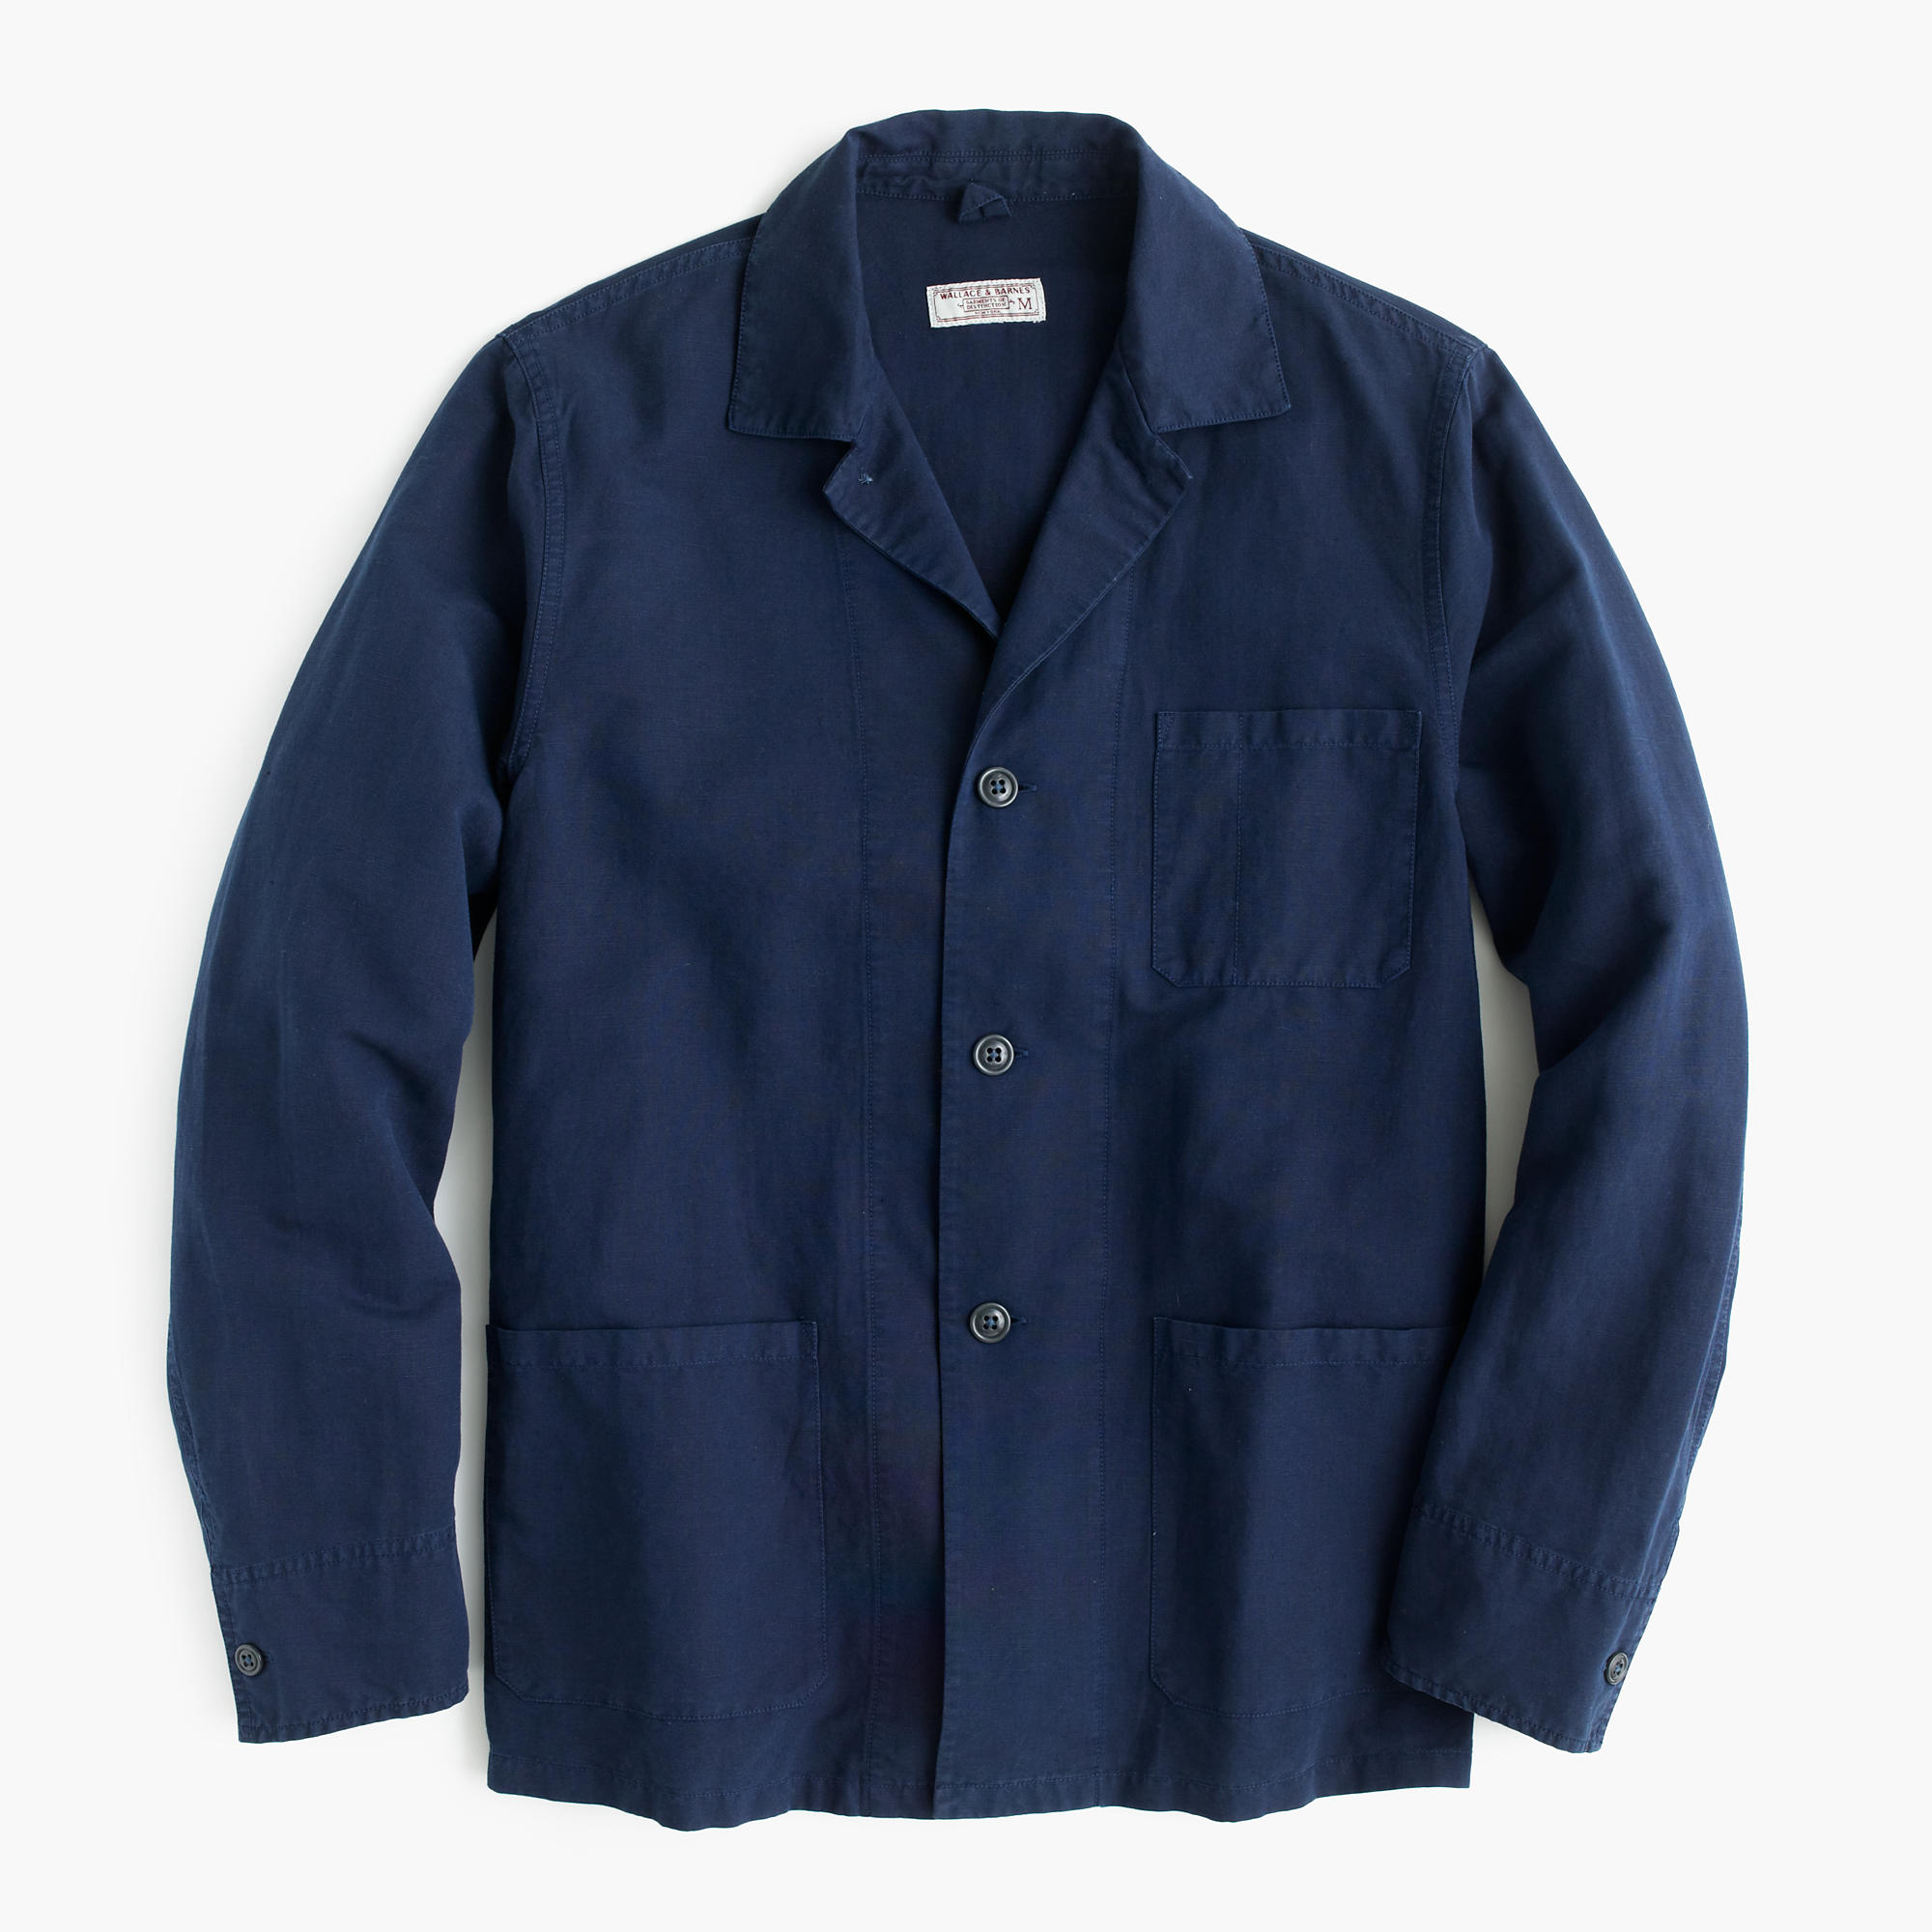 Wallace & Barnes Lightweight Garment-Dyed Cotton-Linen Shirt ...